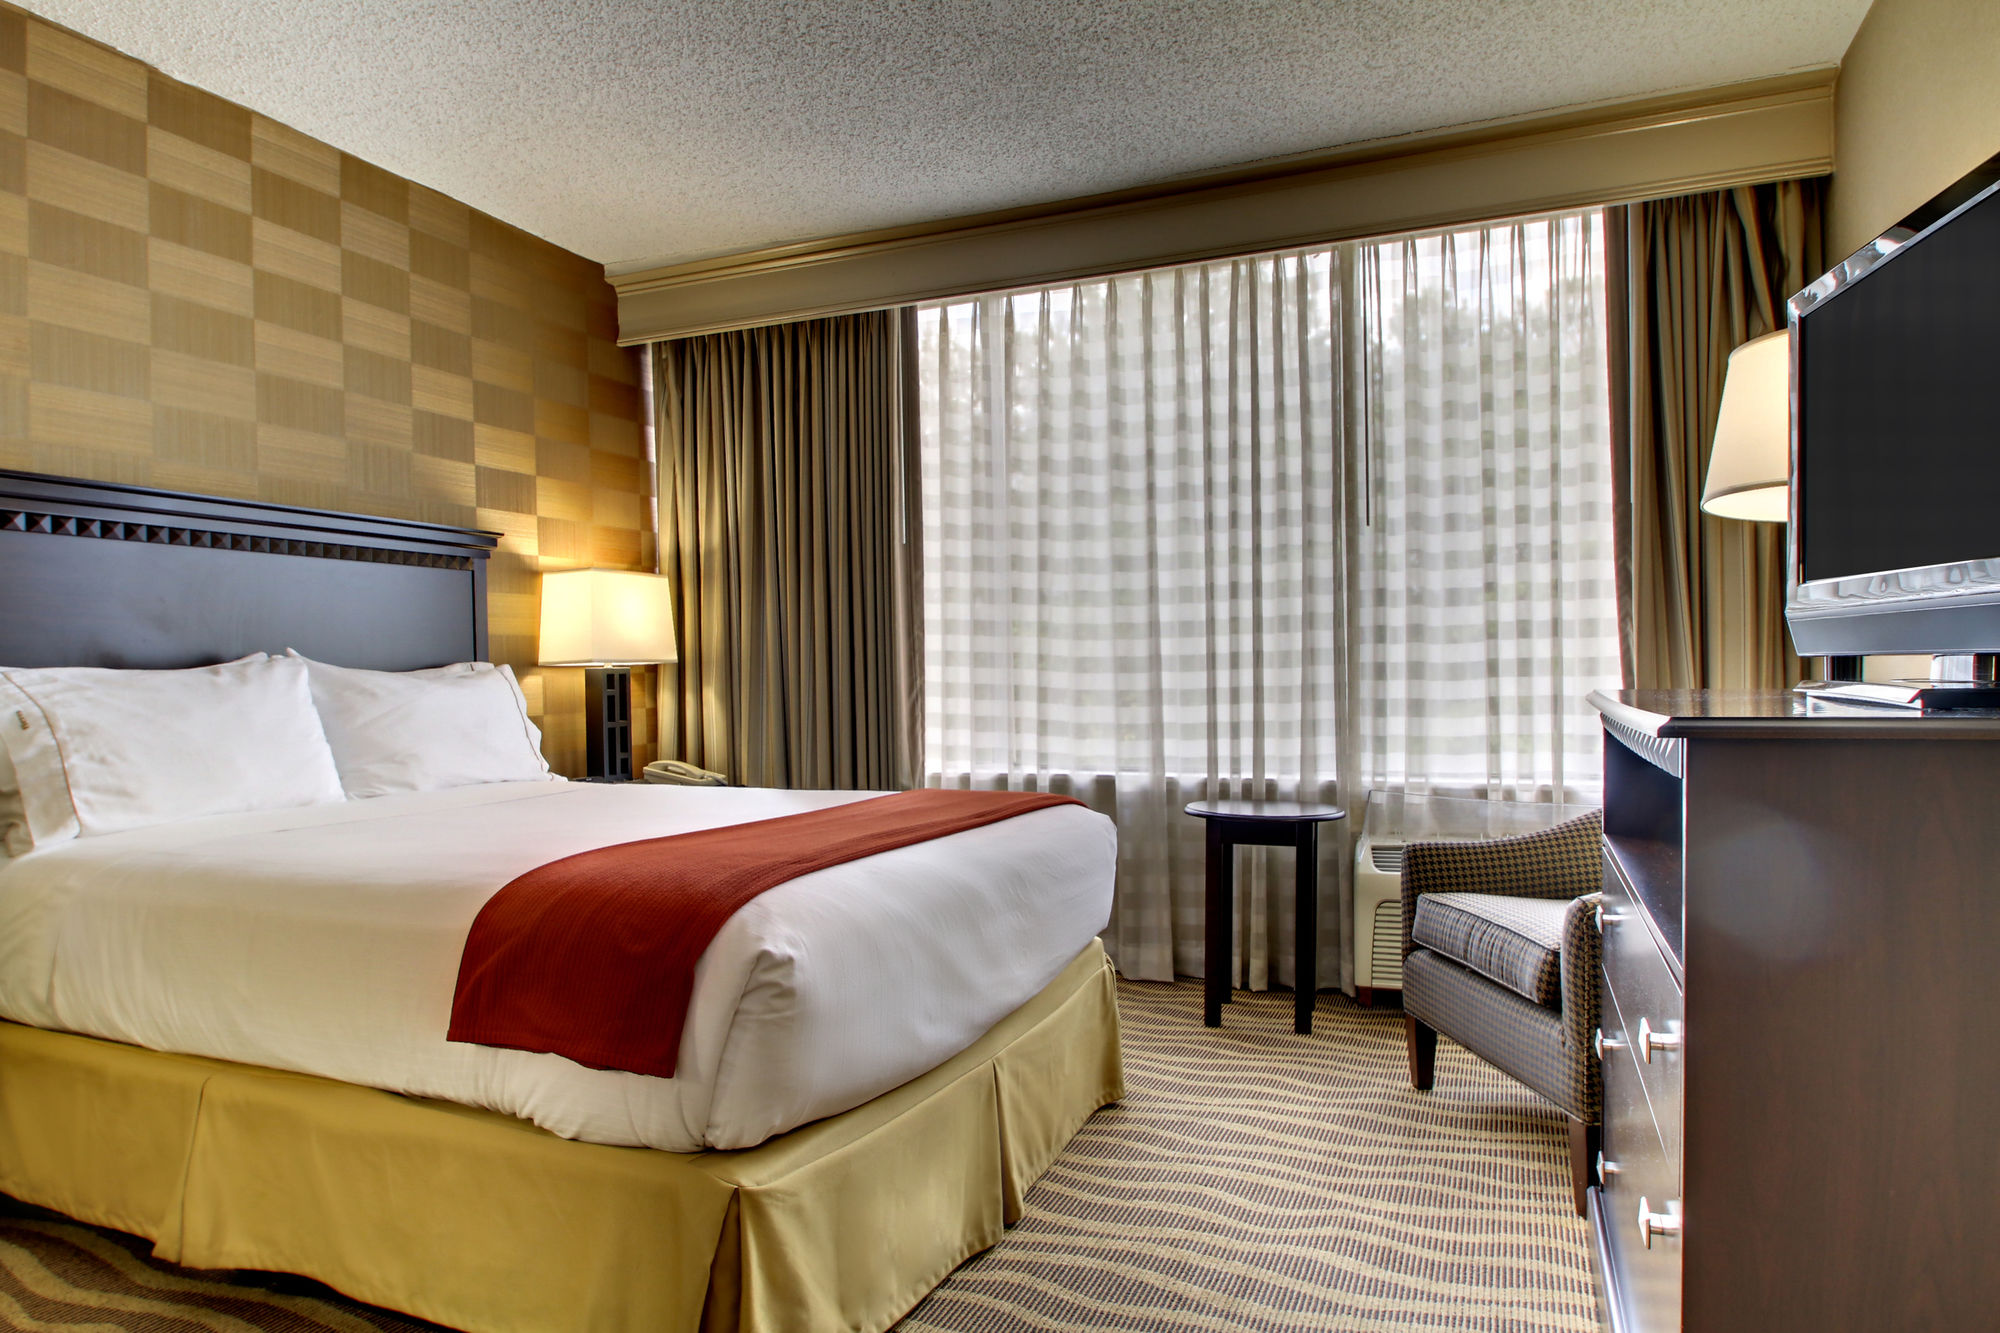 Holiday Inn Express Kennesaw in Kennesaw, GA